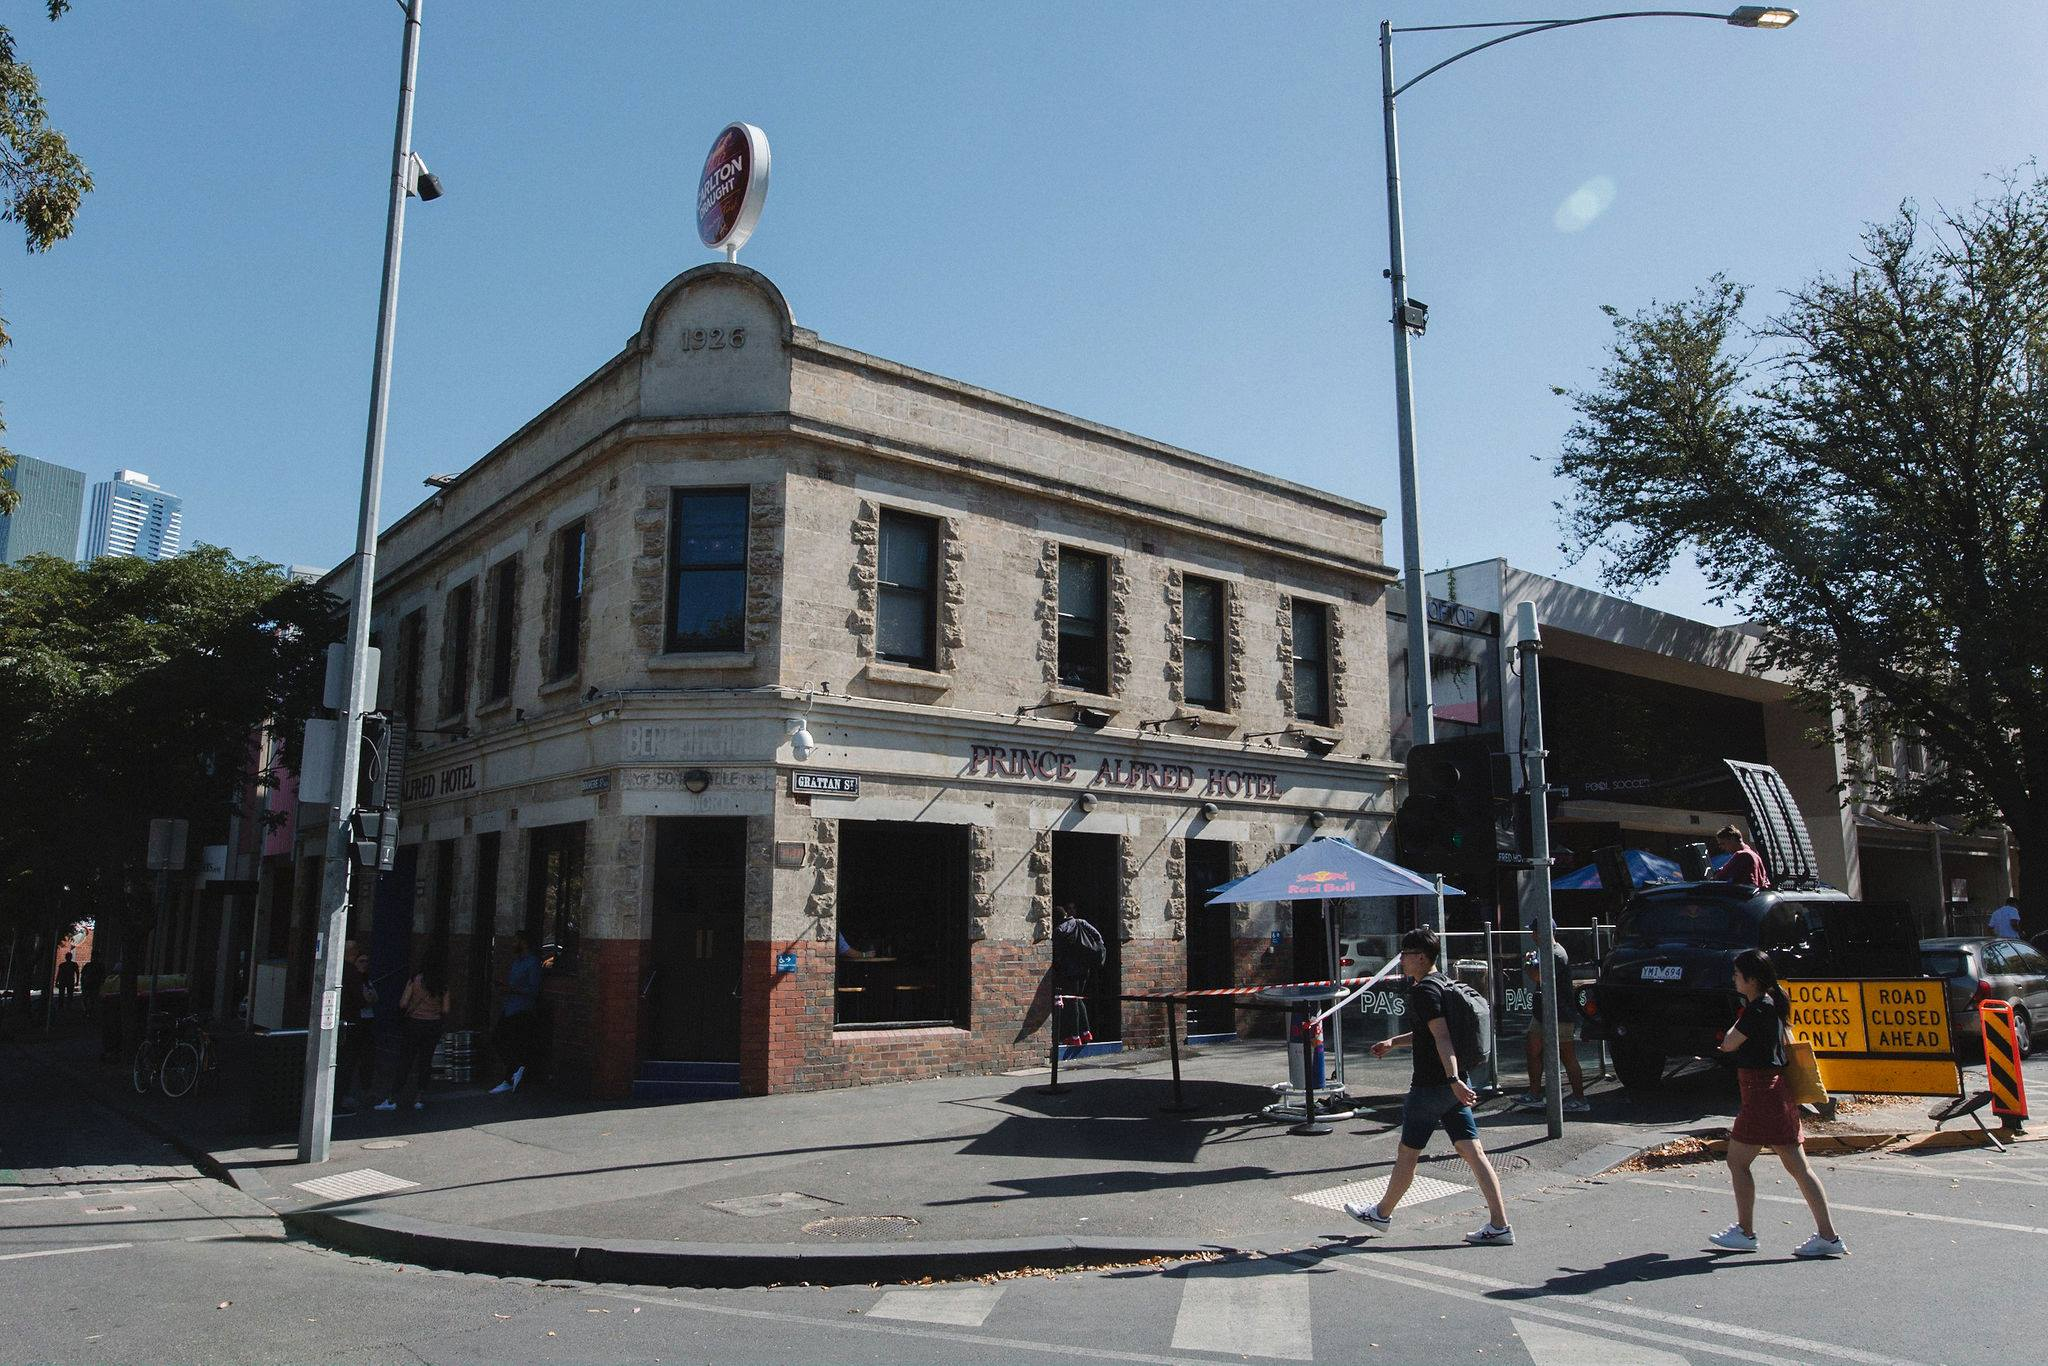 Pub Of The Week: Tony Leonard reviews the Prince Alfred Hotel